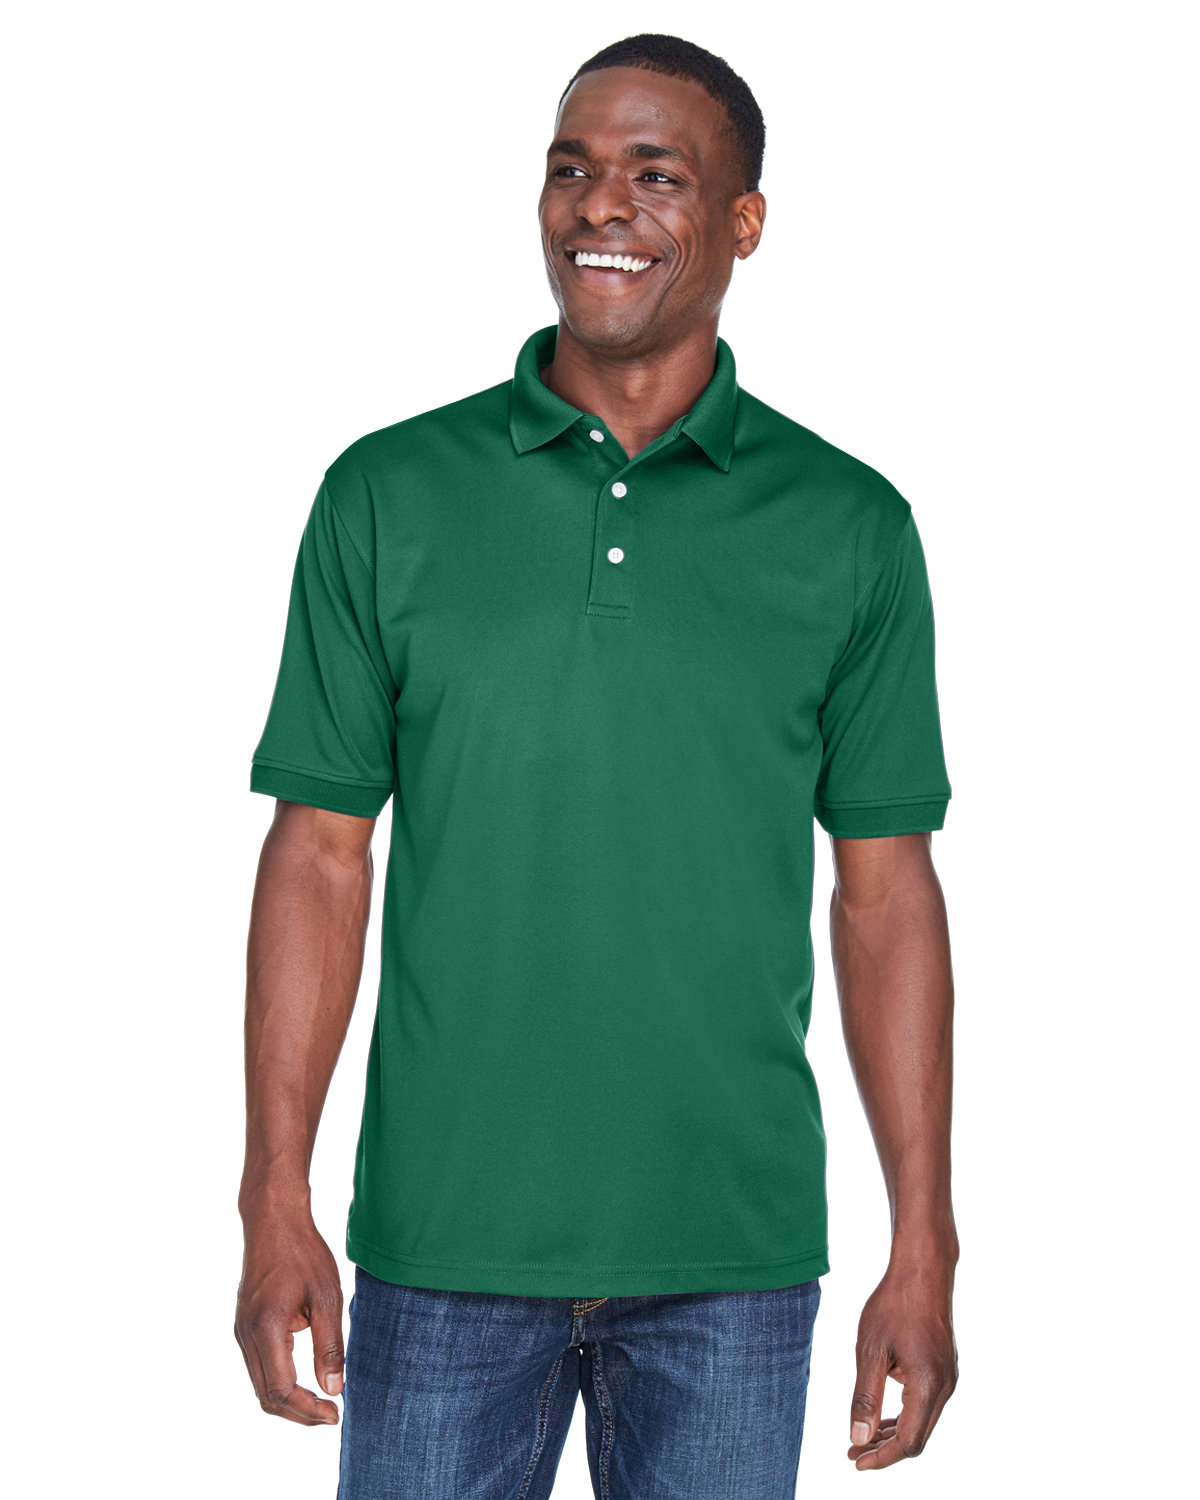 UltraClub Men's PlatinumPerformance Piqué Polo with TempControl Technology FOREST GREEN